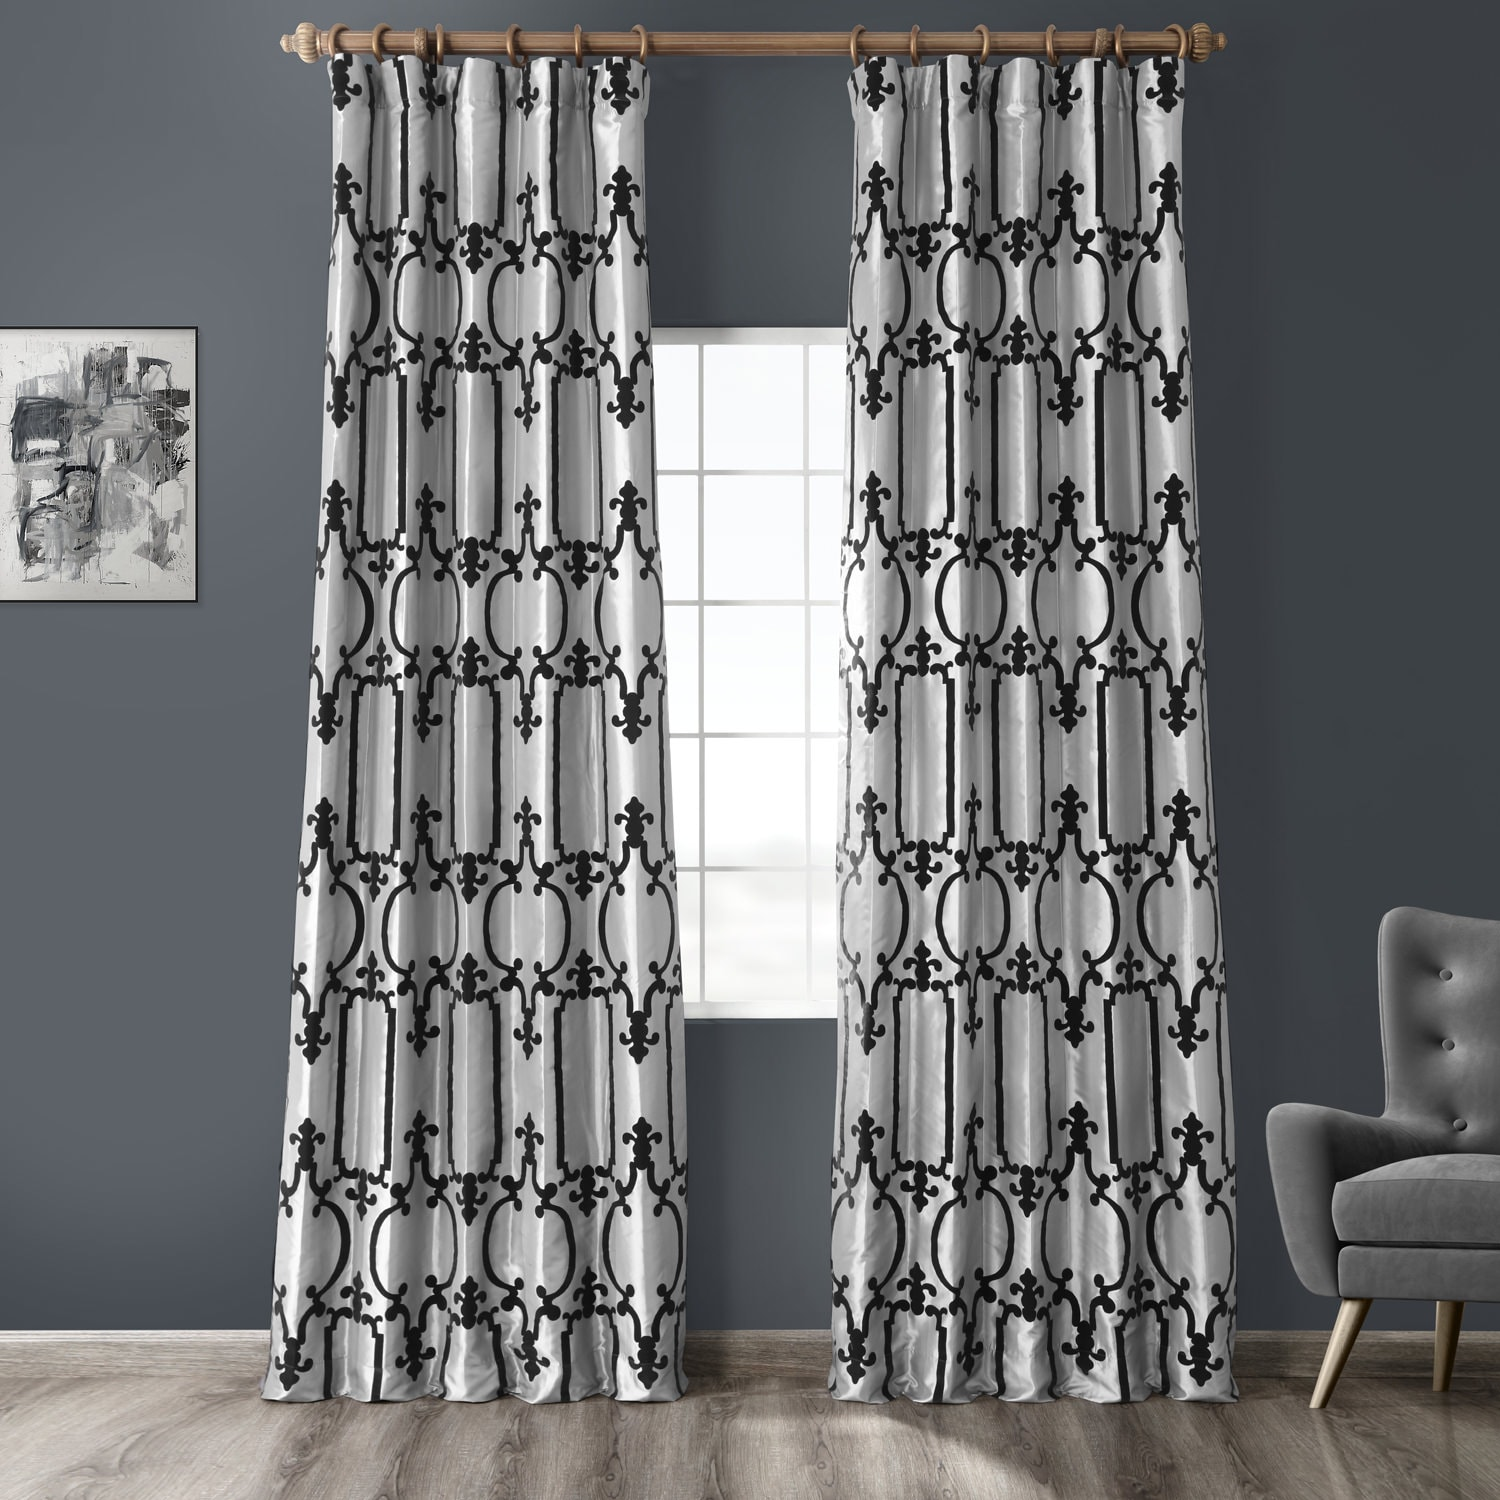 Royal Gate Silver & Black Flocked Faux Silk Curtain